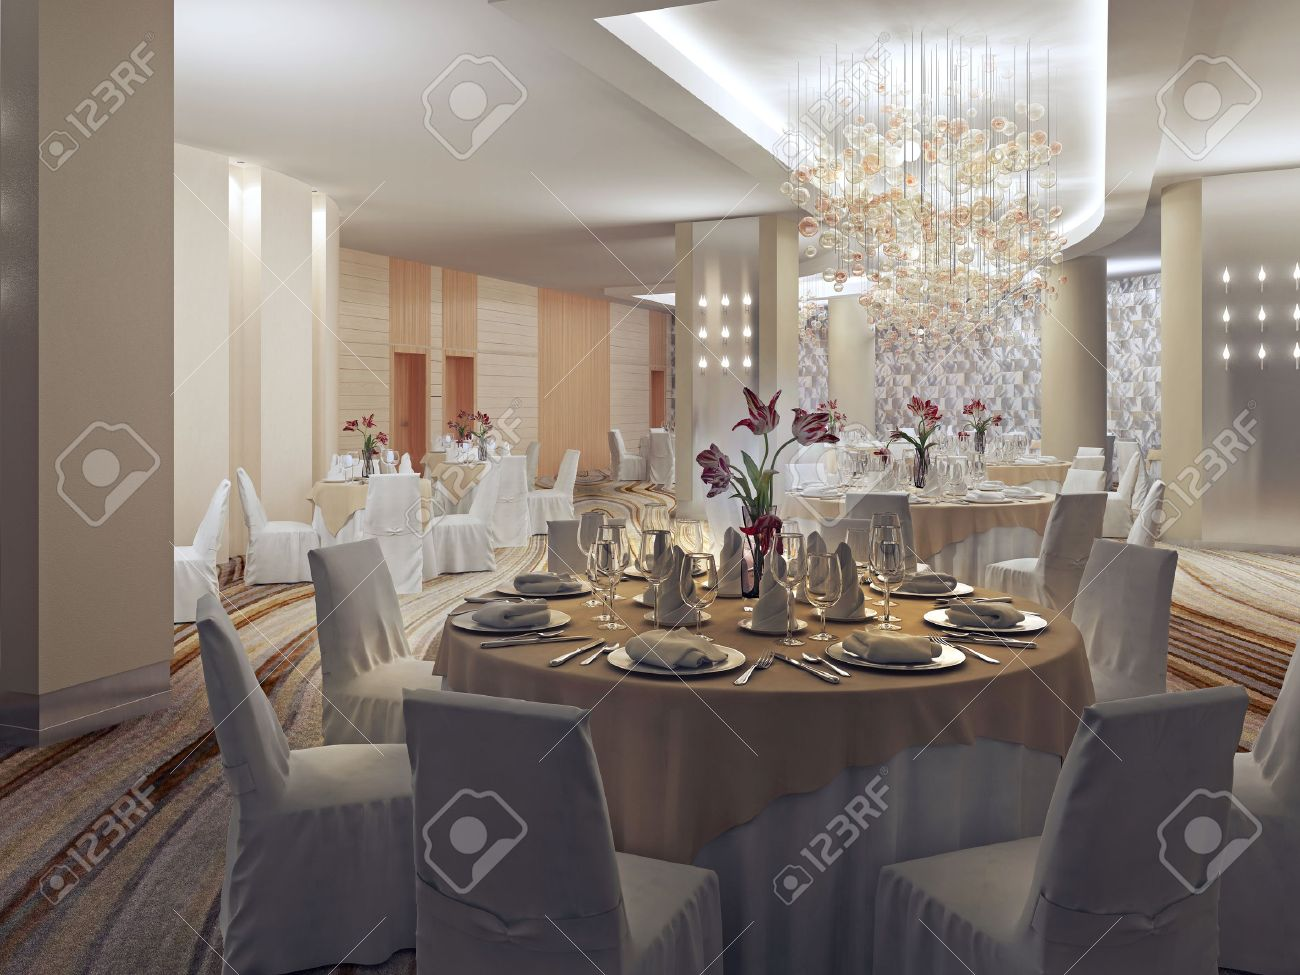 Ballroom, Banquet Hall In Restaurant In Art Deco Style. Fashionable ...